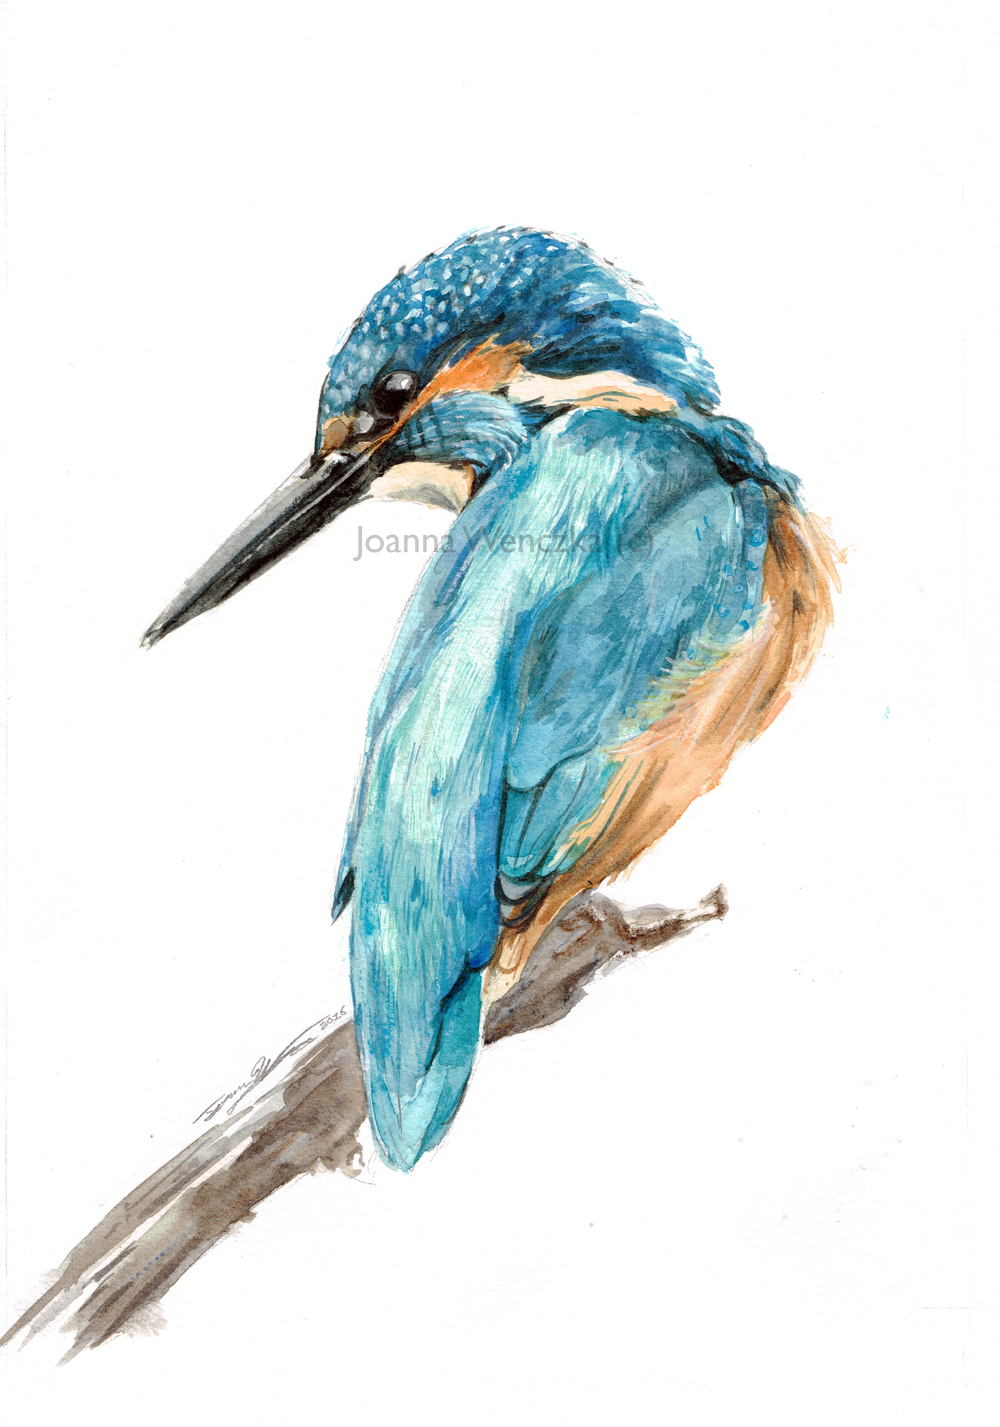 Elvis the Kingfisher